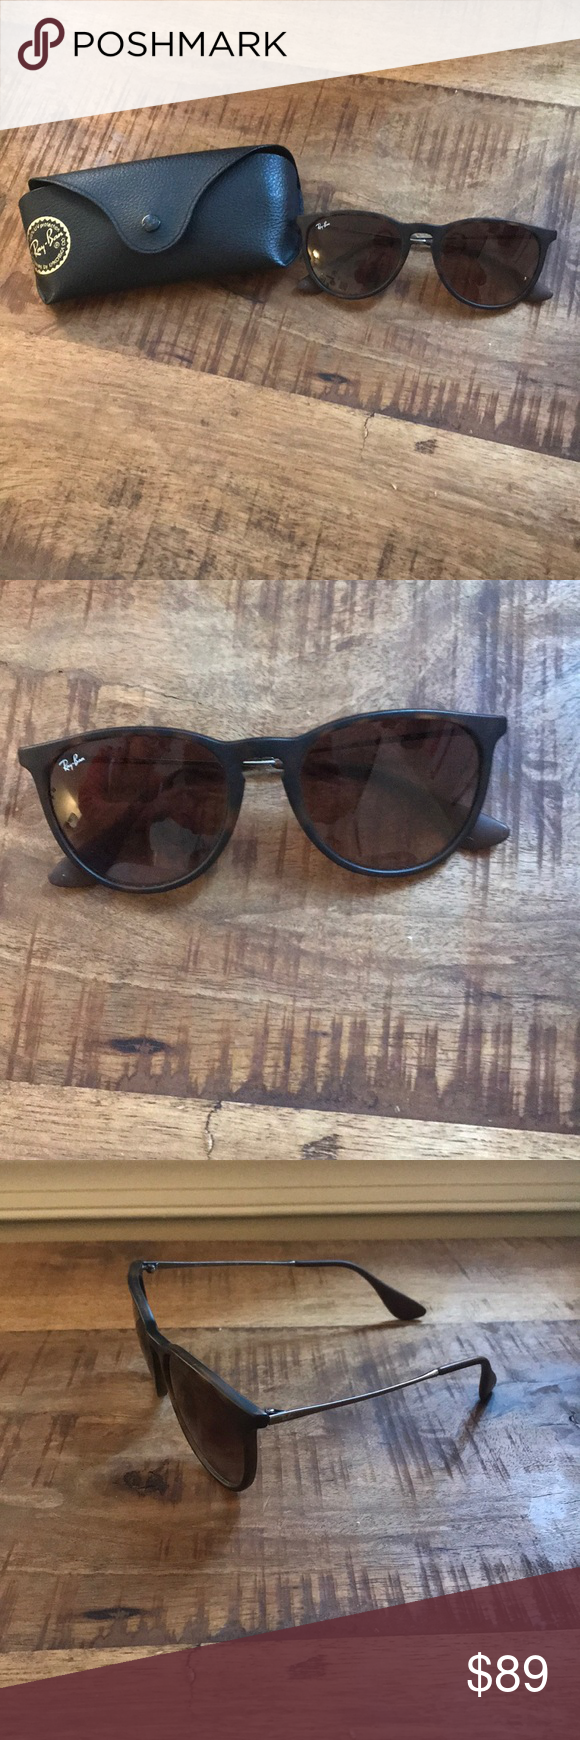 110bce334b0 ERIKA Classic in tortoise  Authentic  Tortoise frame with dark rubber  temple tips